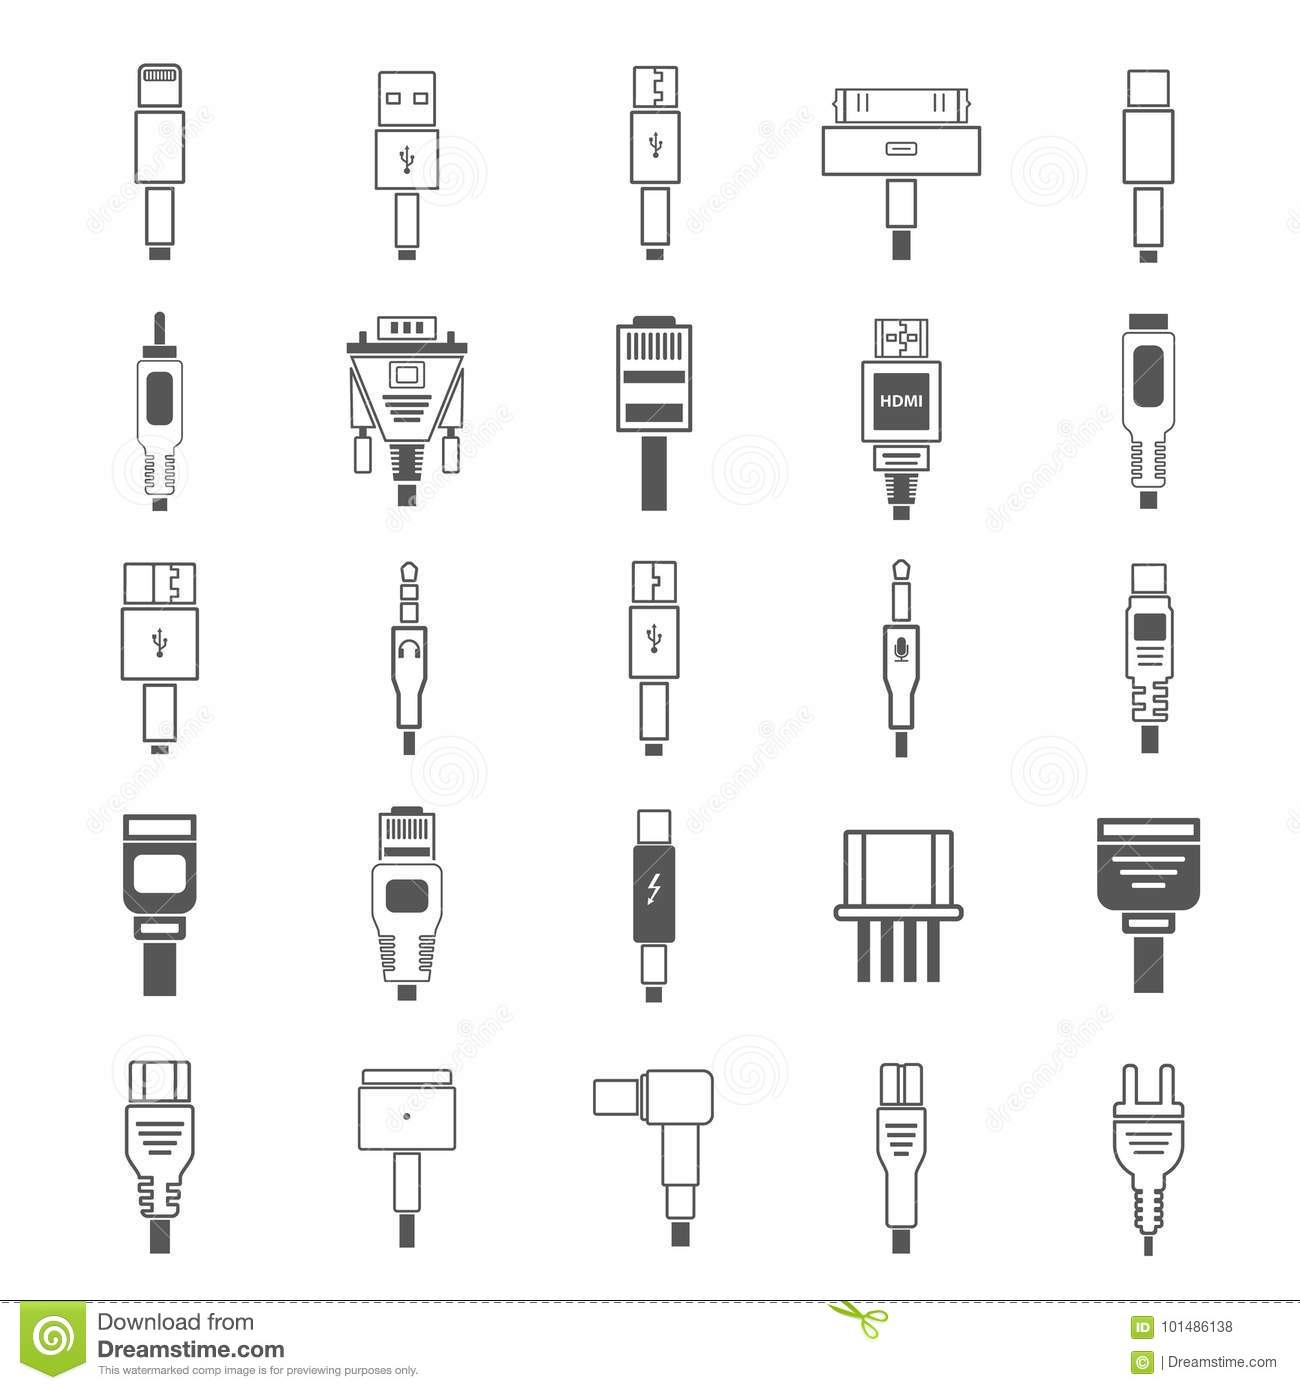 Electric Plug Connectors And Jack Flat Line Icons Set